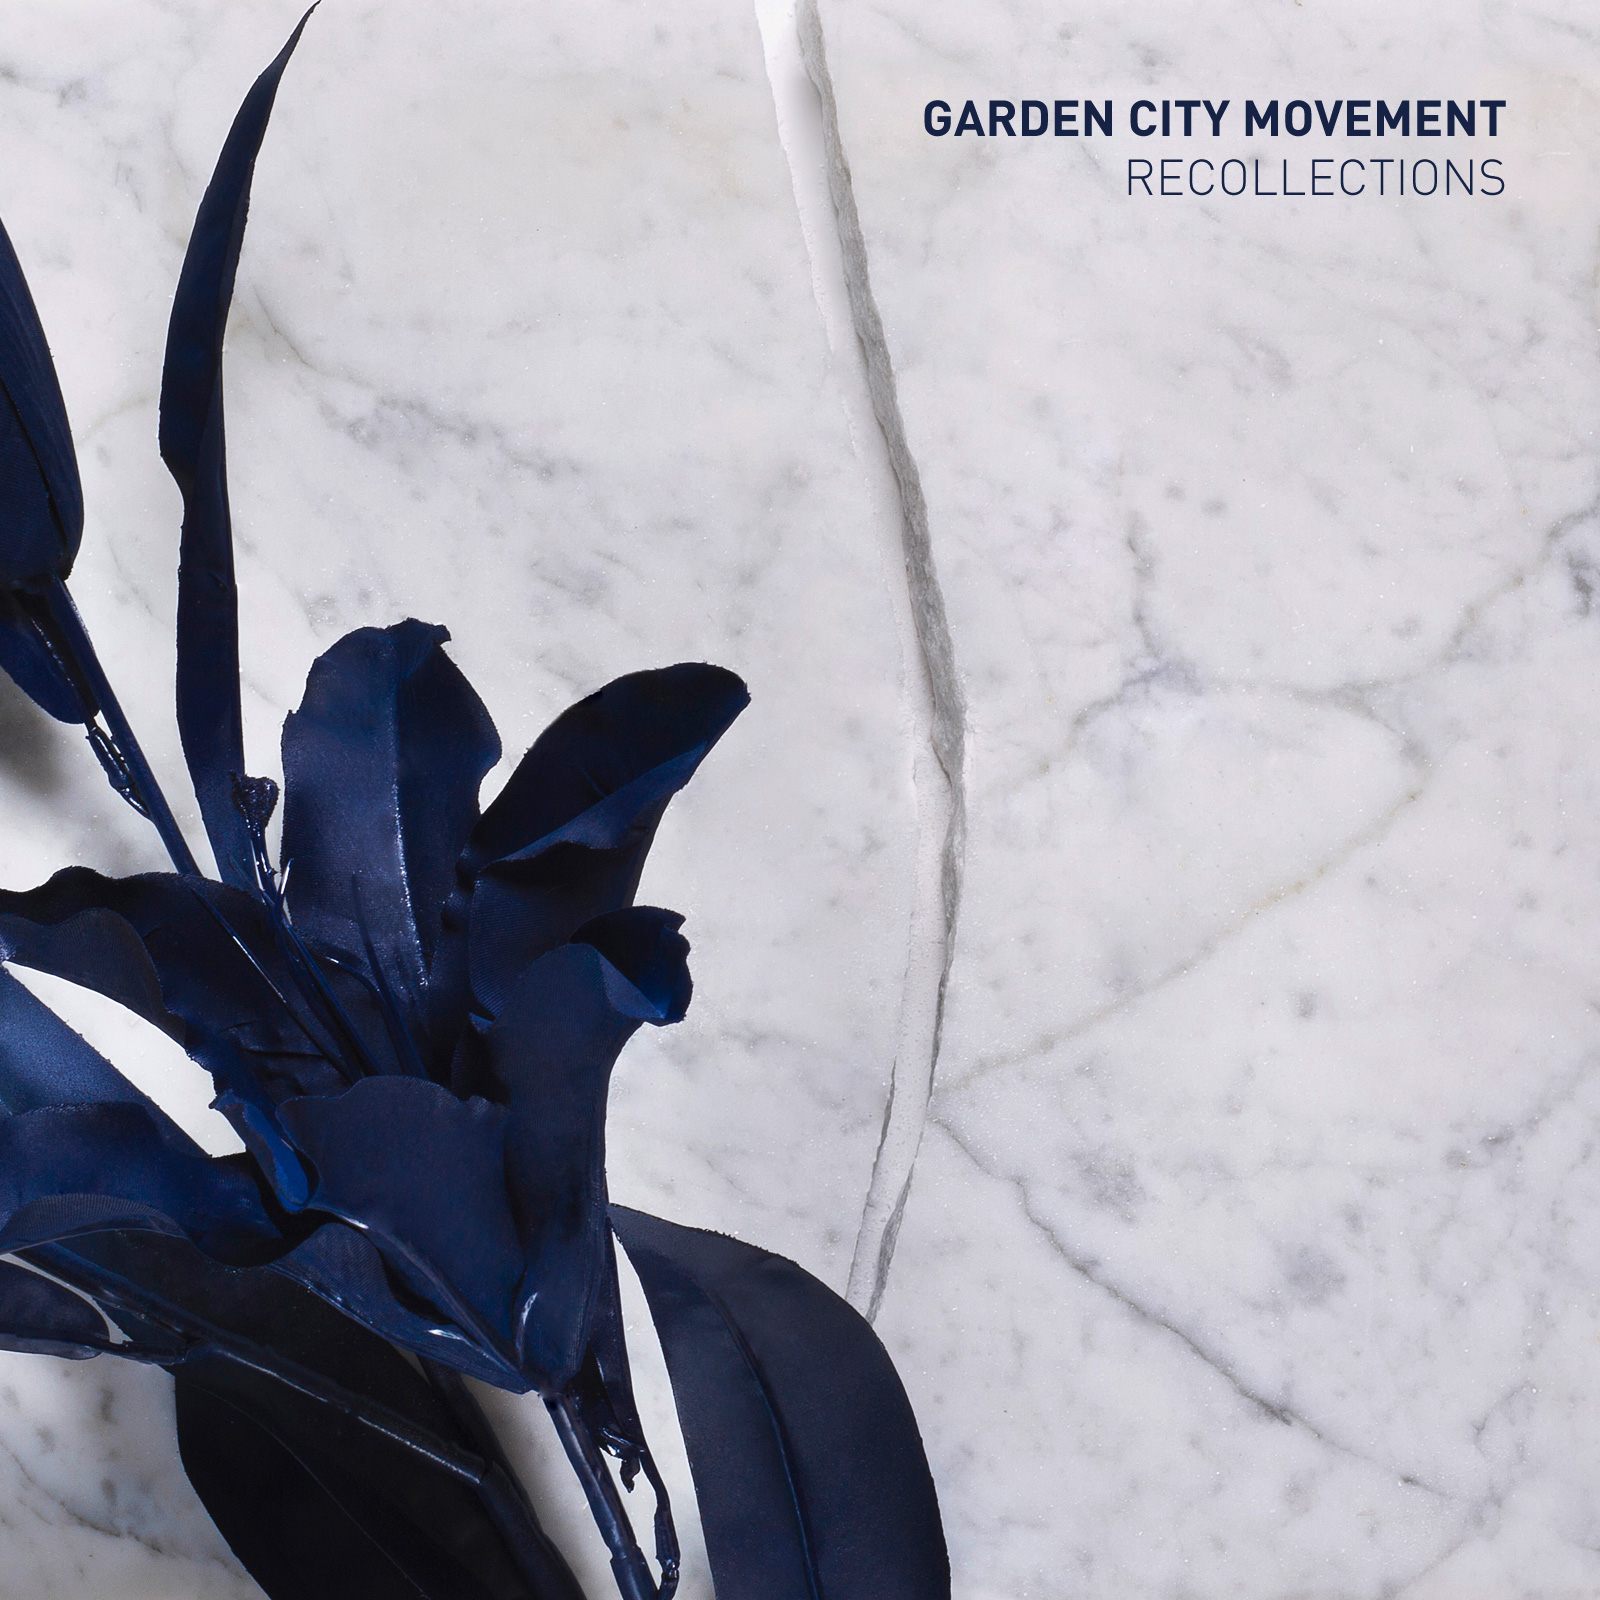 BLDG5 Records - Garden City Movement